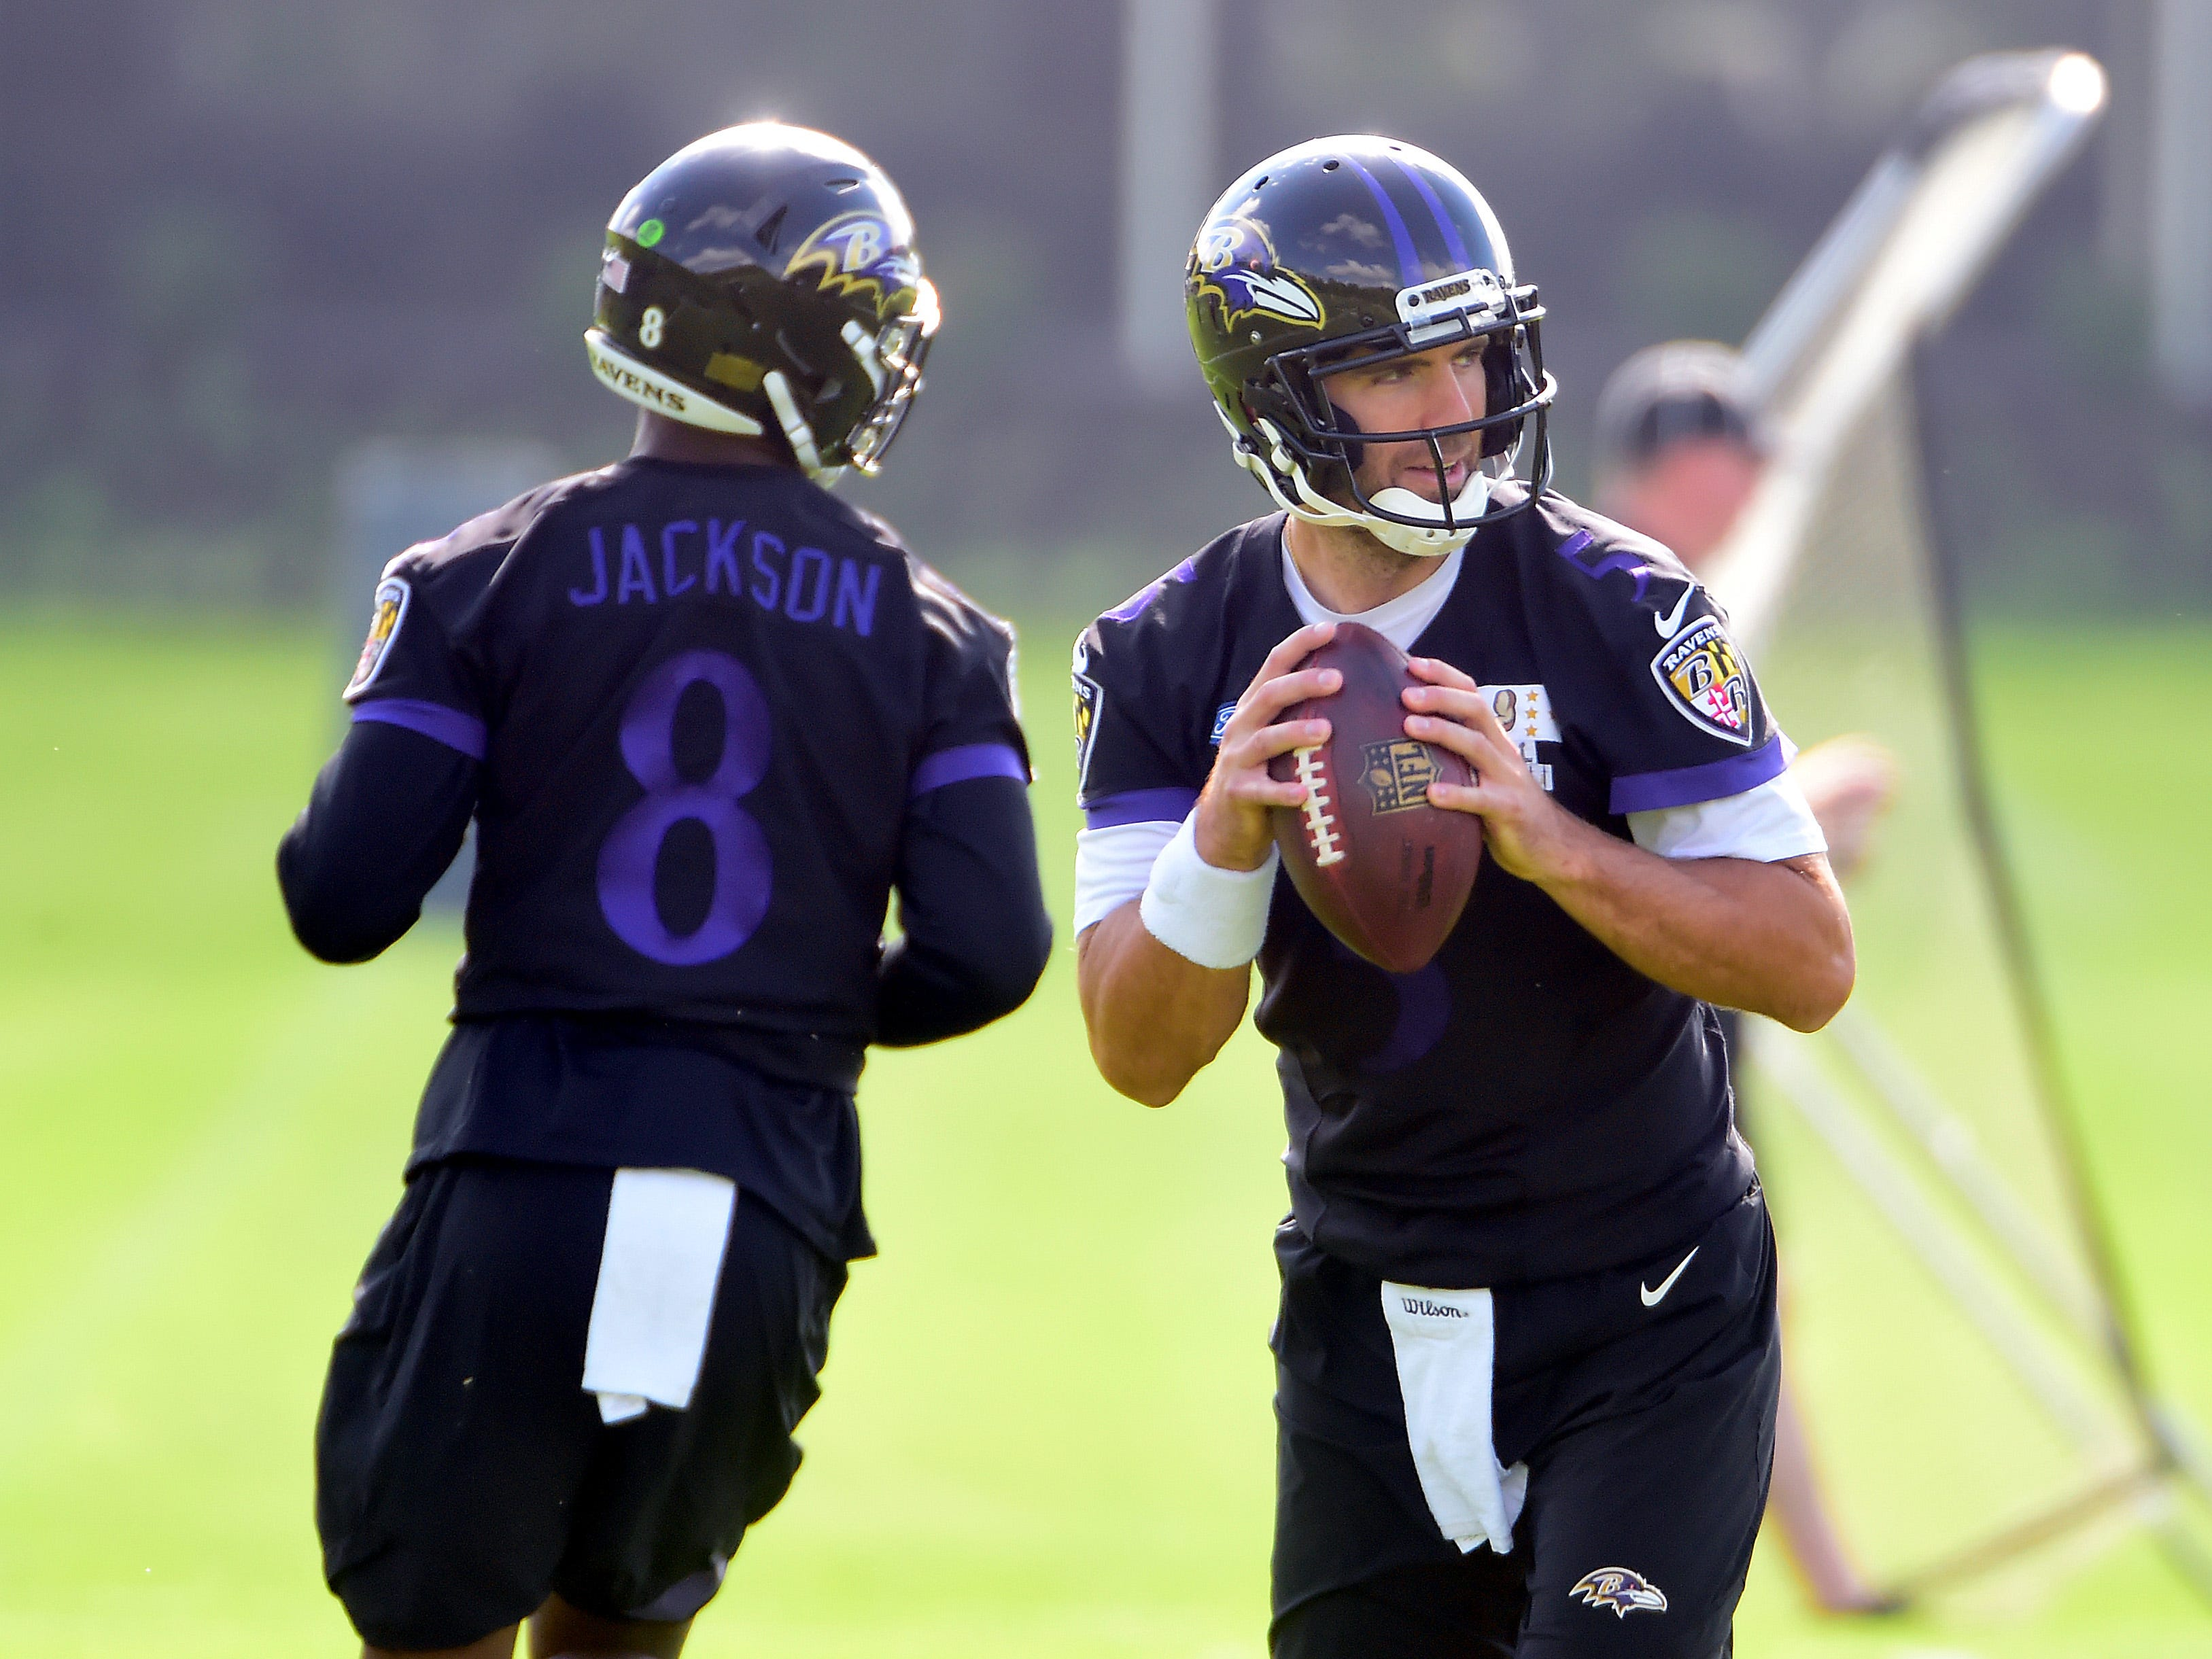 18. Ravens (21): Hard team to read. However for all the talk about quarterbacks, depth along both lines might warrant as much scrutiny as Flacco, Jackson.